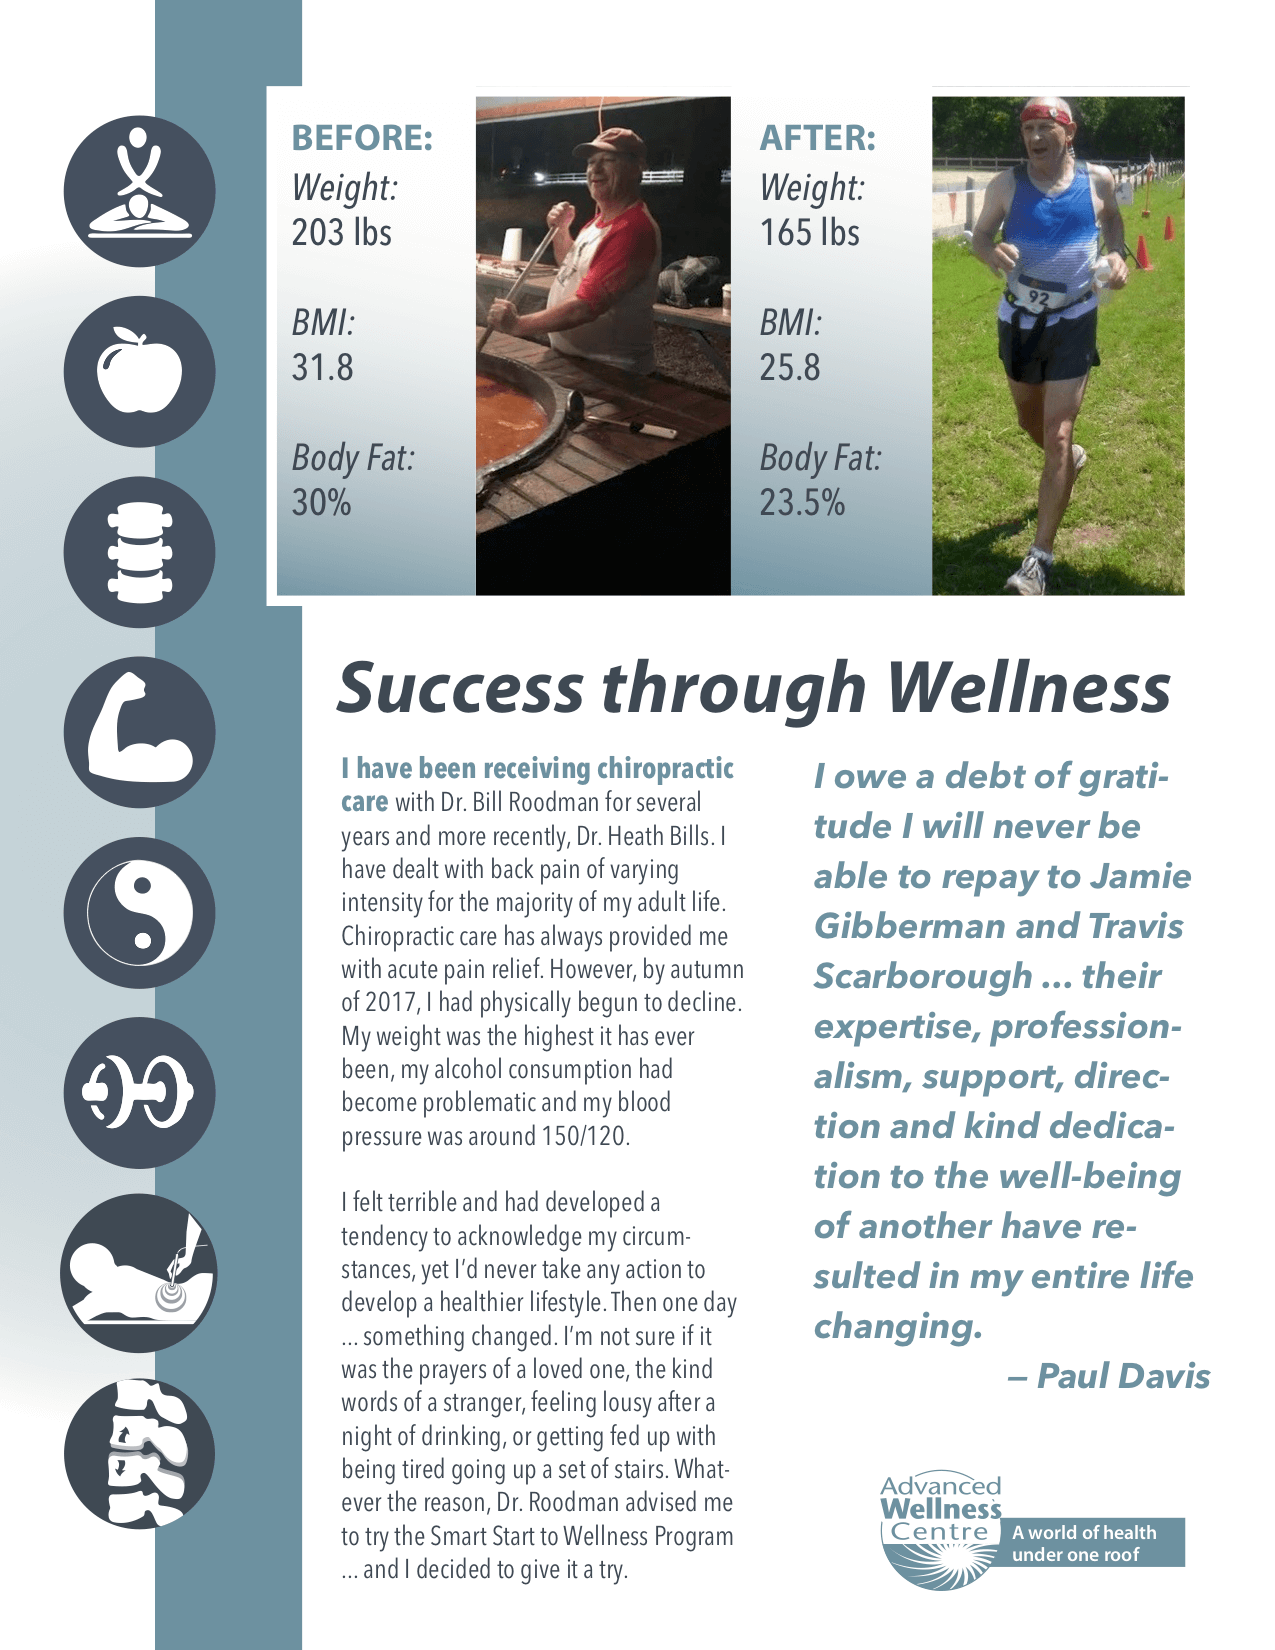 Success Story Paul Davis